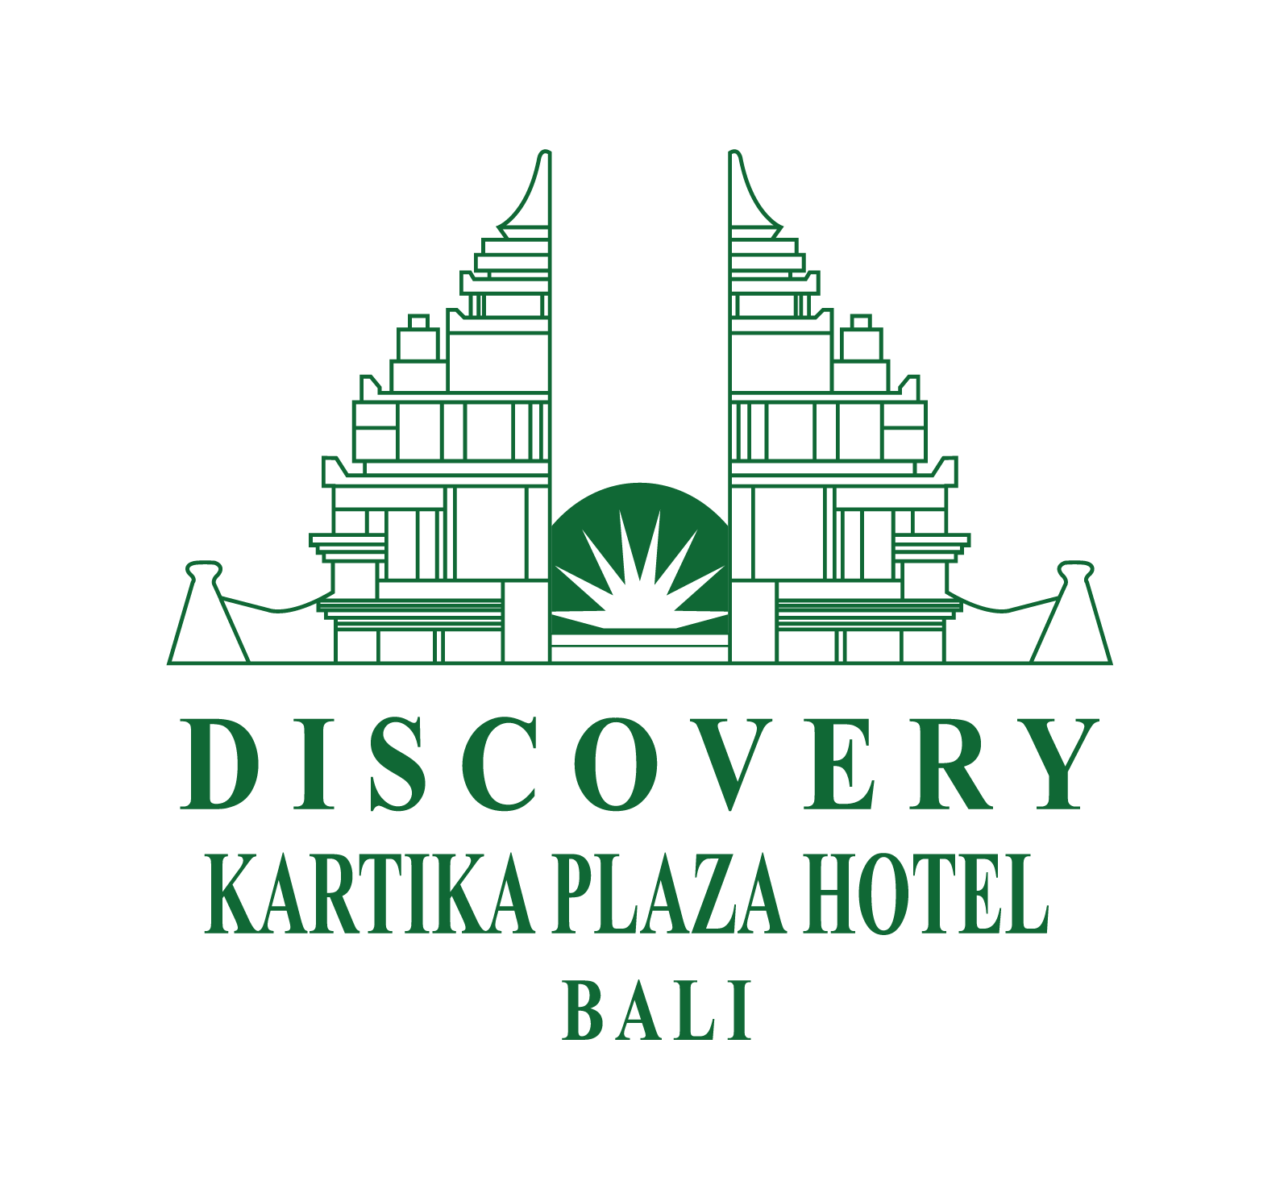 Discovery-Logo-1280x1189.png